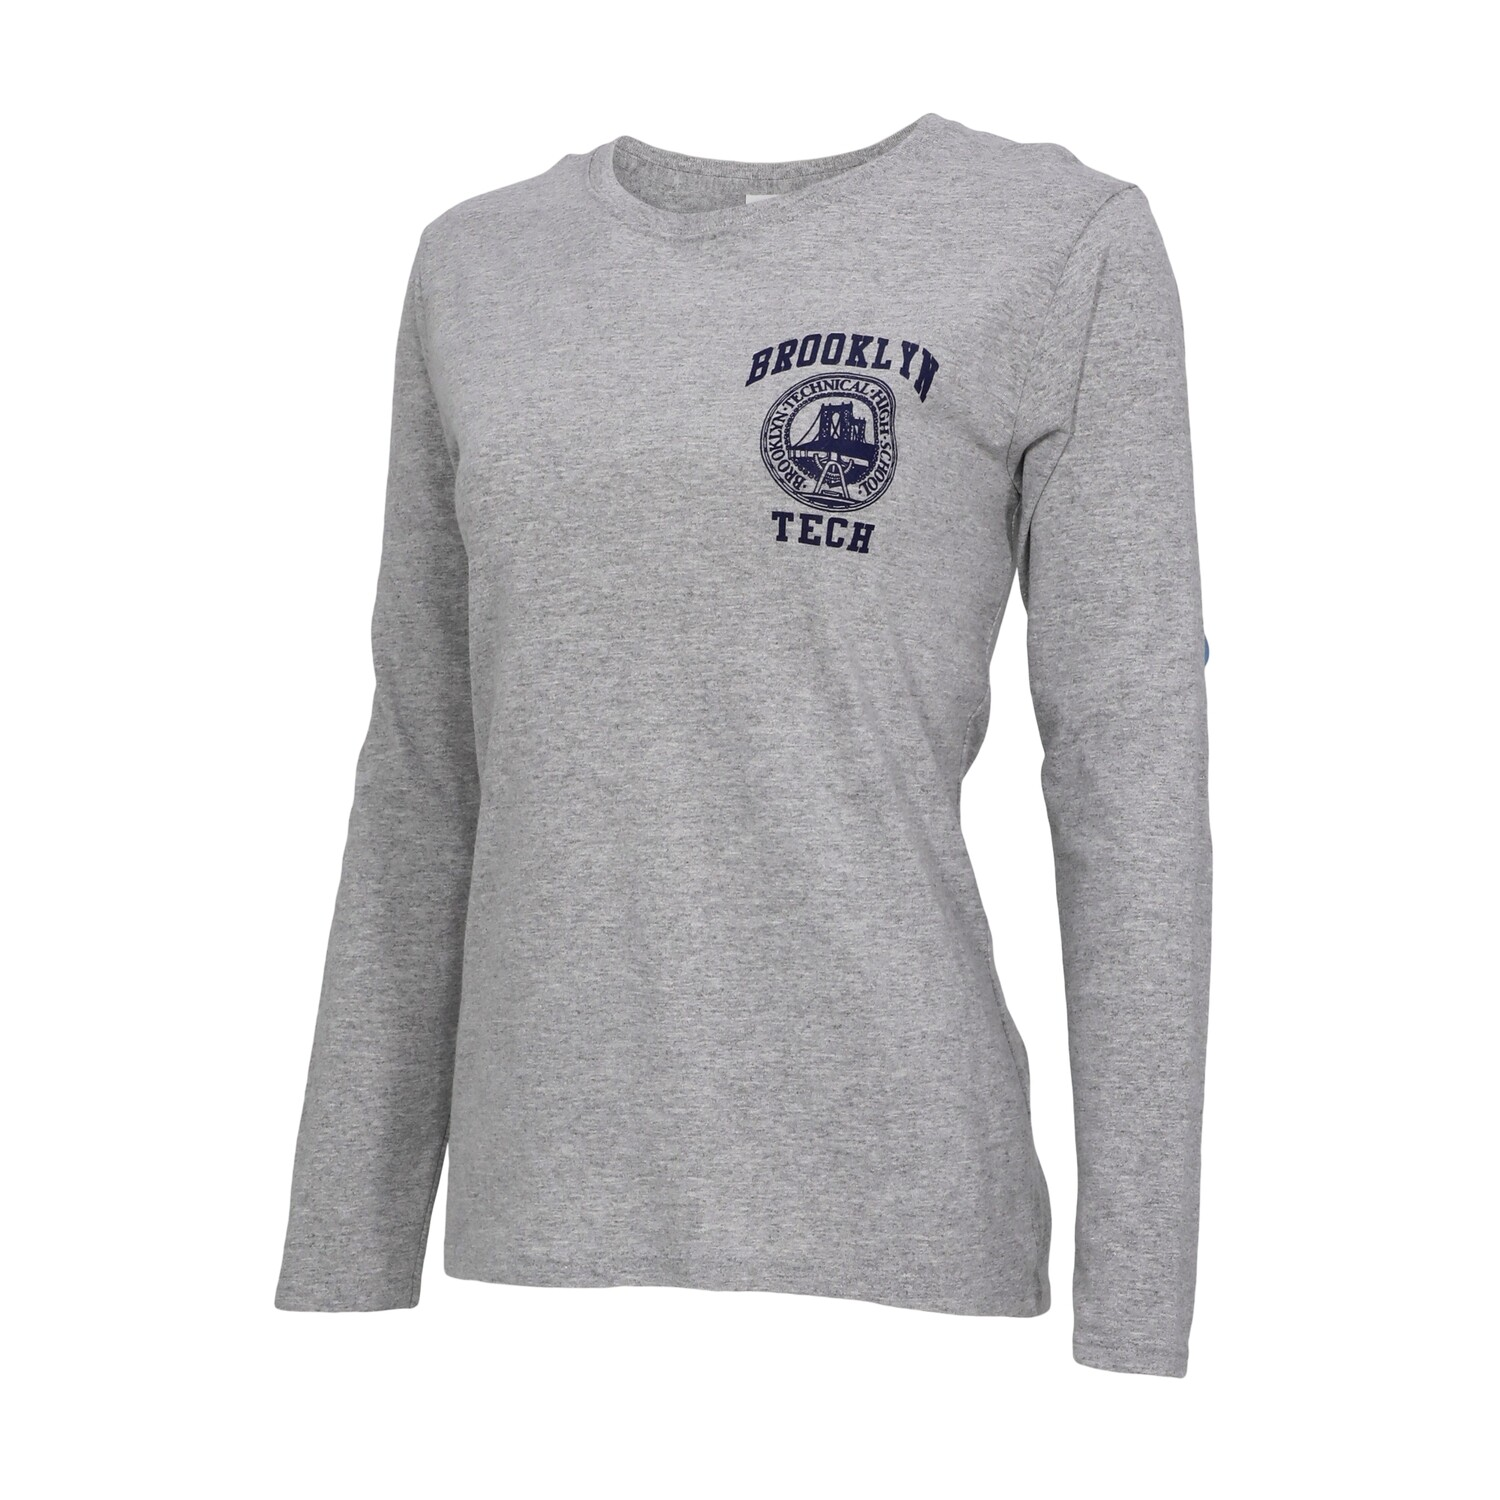 Women's Long Sleeve T-shirt - Navy Imprint